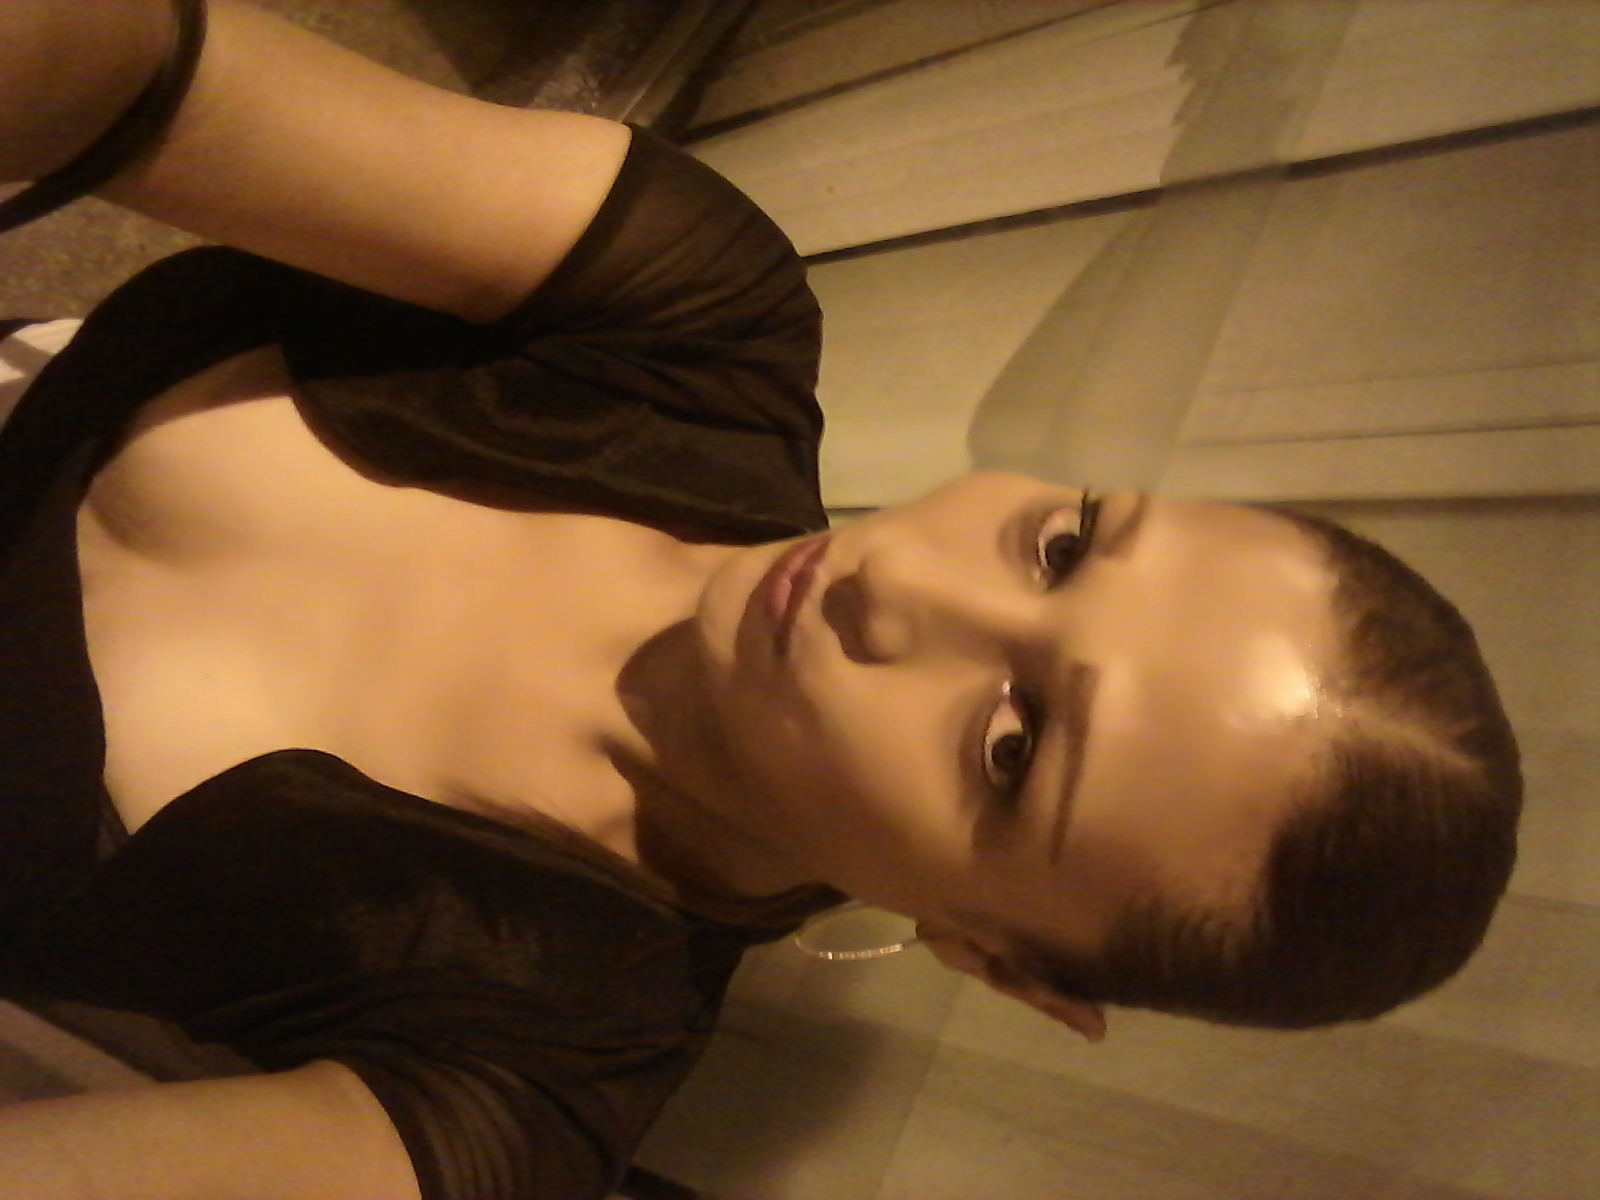 Angela trans. - Escort Courbevoie